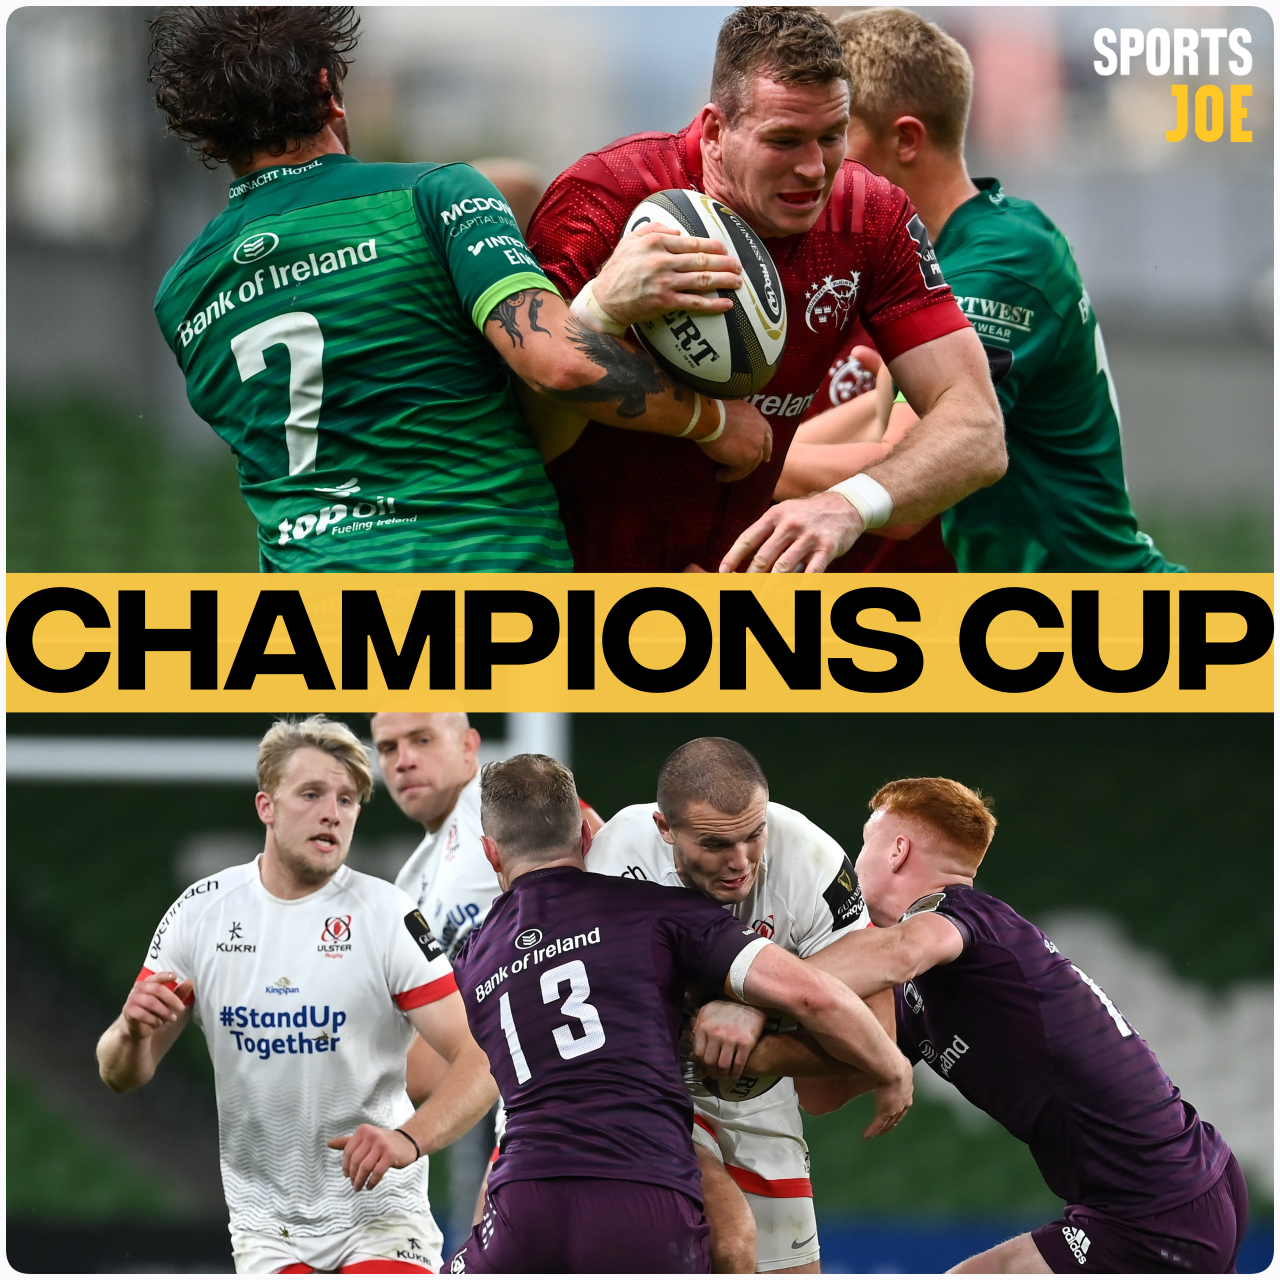 Jack Carty And Connacht Given Spot In Revamped Champions Cup